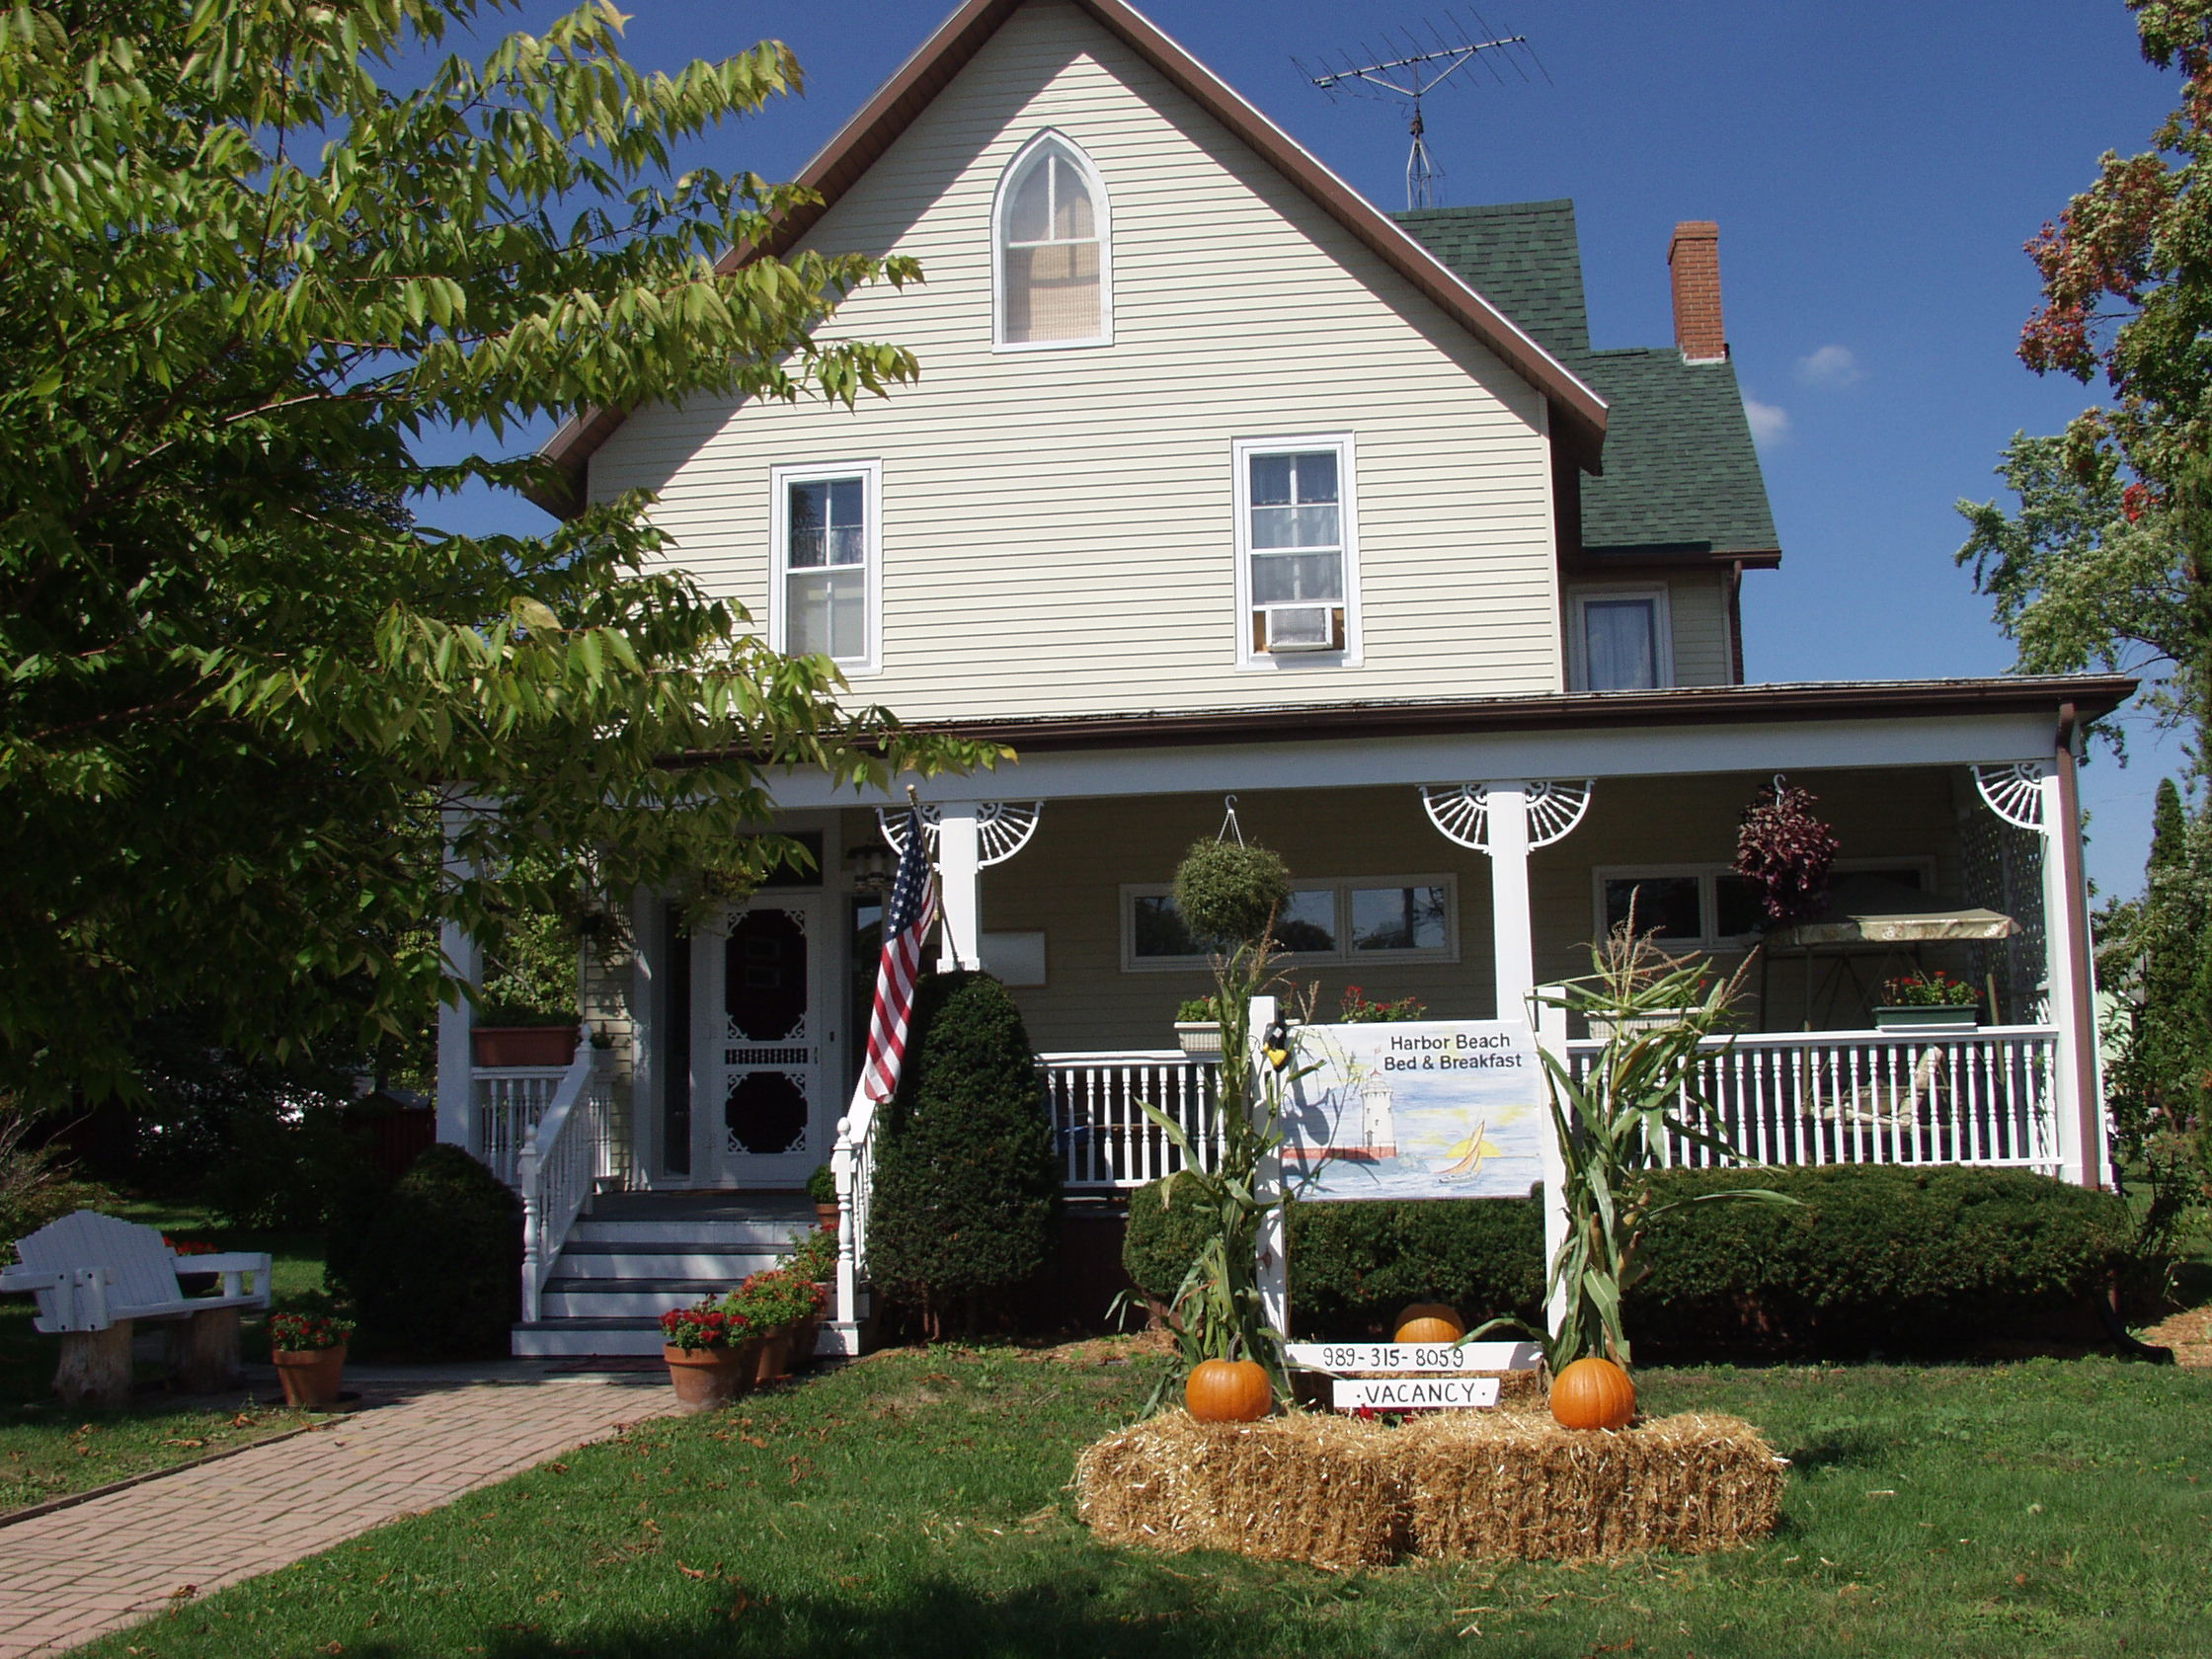 Harbor Beach Bed and Breakfast